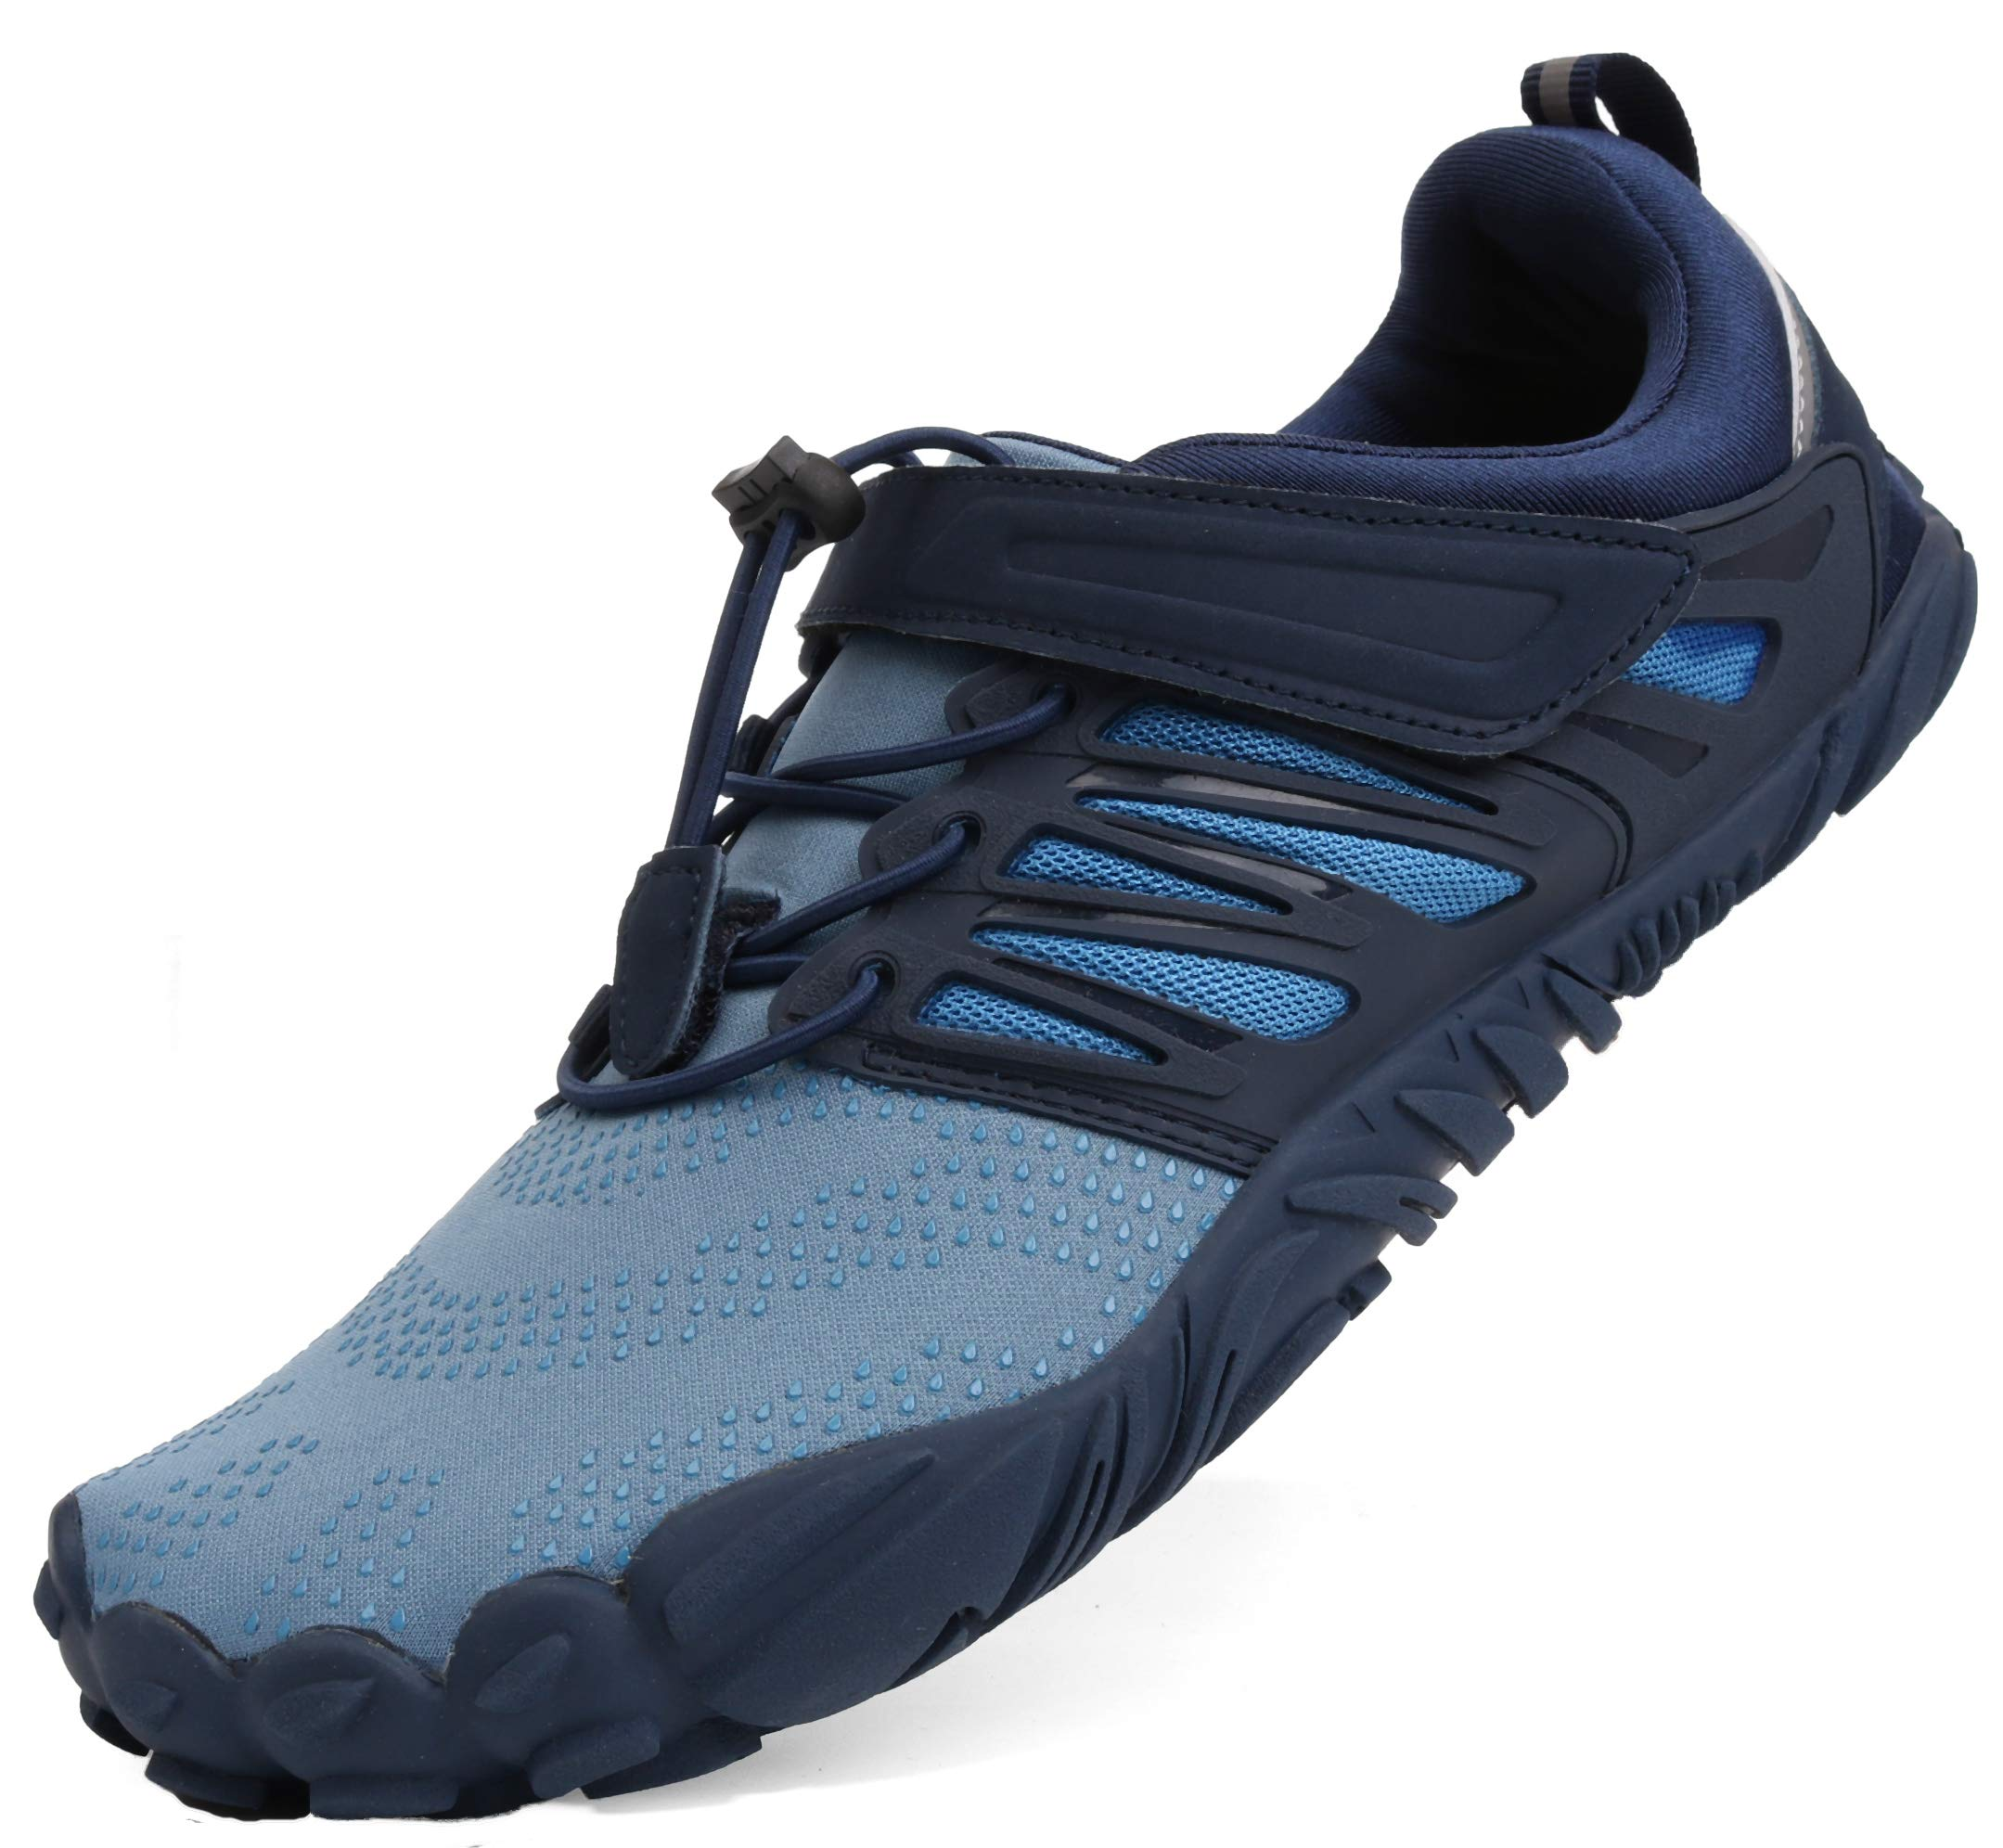 WHITIN Men's Minimalist Barefoot Shoes Low Zero Drop Trail Running 5 Five Fingers Wide Toe Box for Male Walking Workout Crossfit Tennis Blue Size 12 by WHITIN